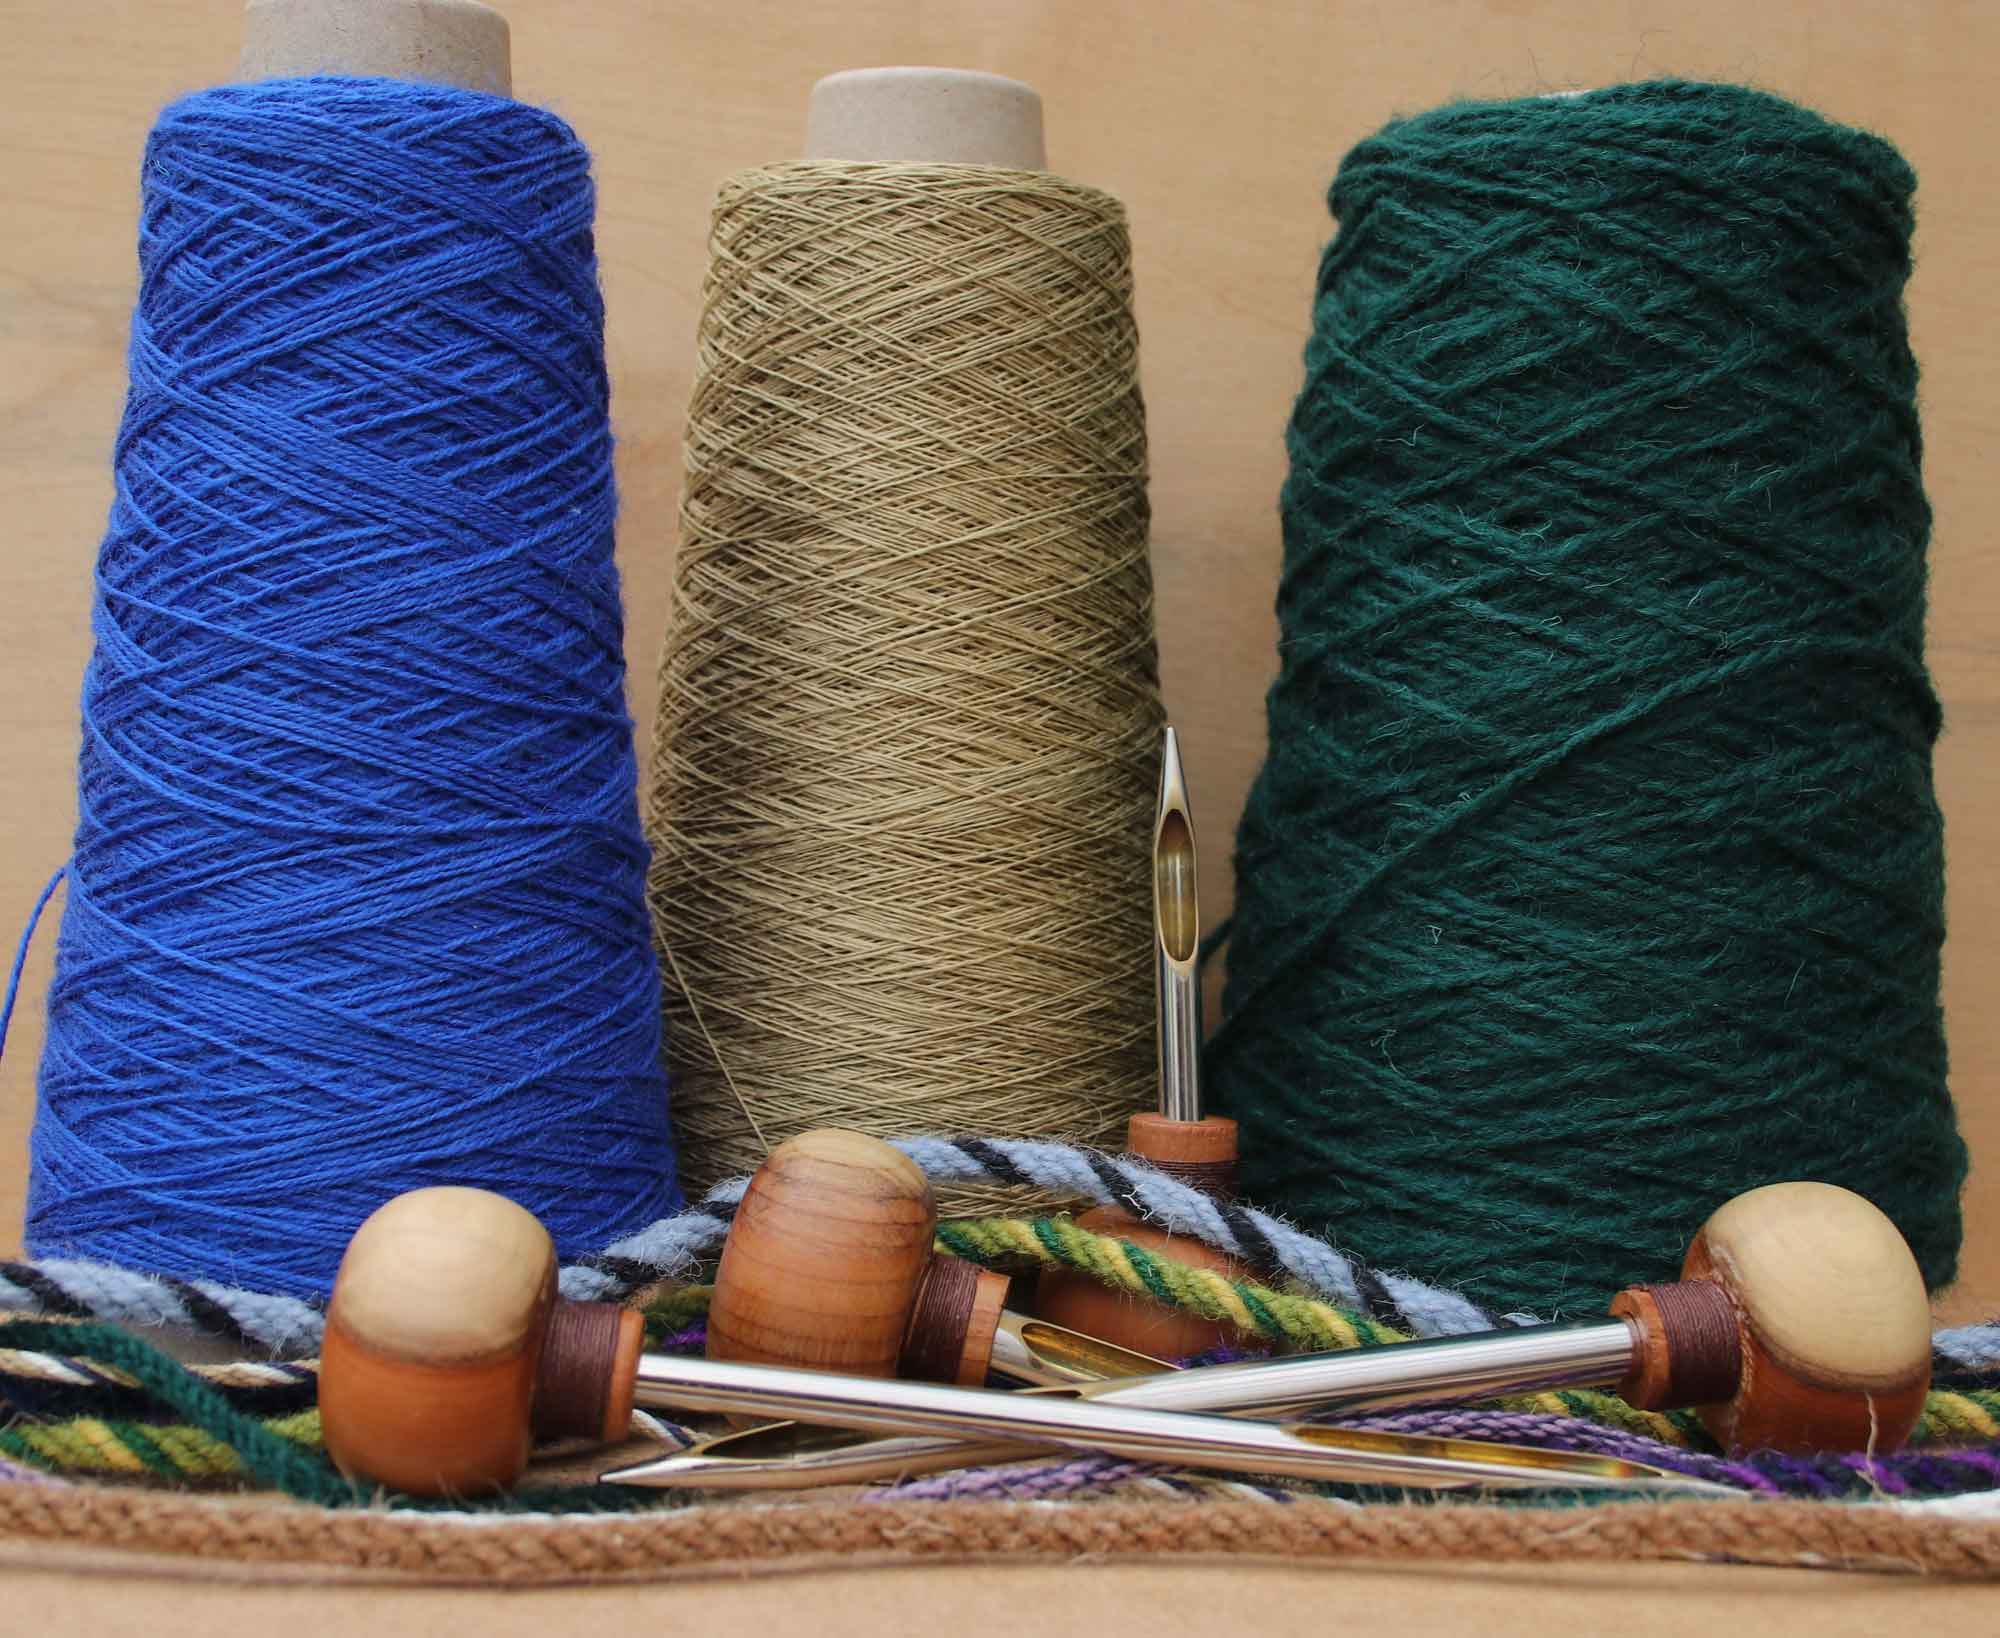 Yarn and tools for ply-split braiding